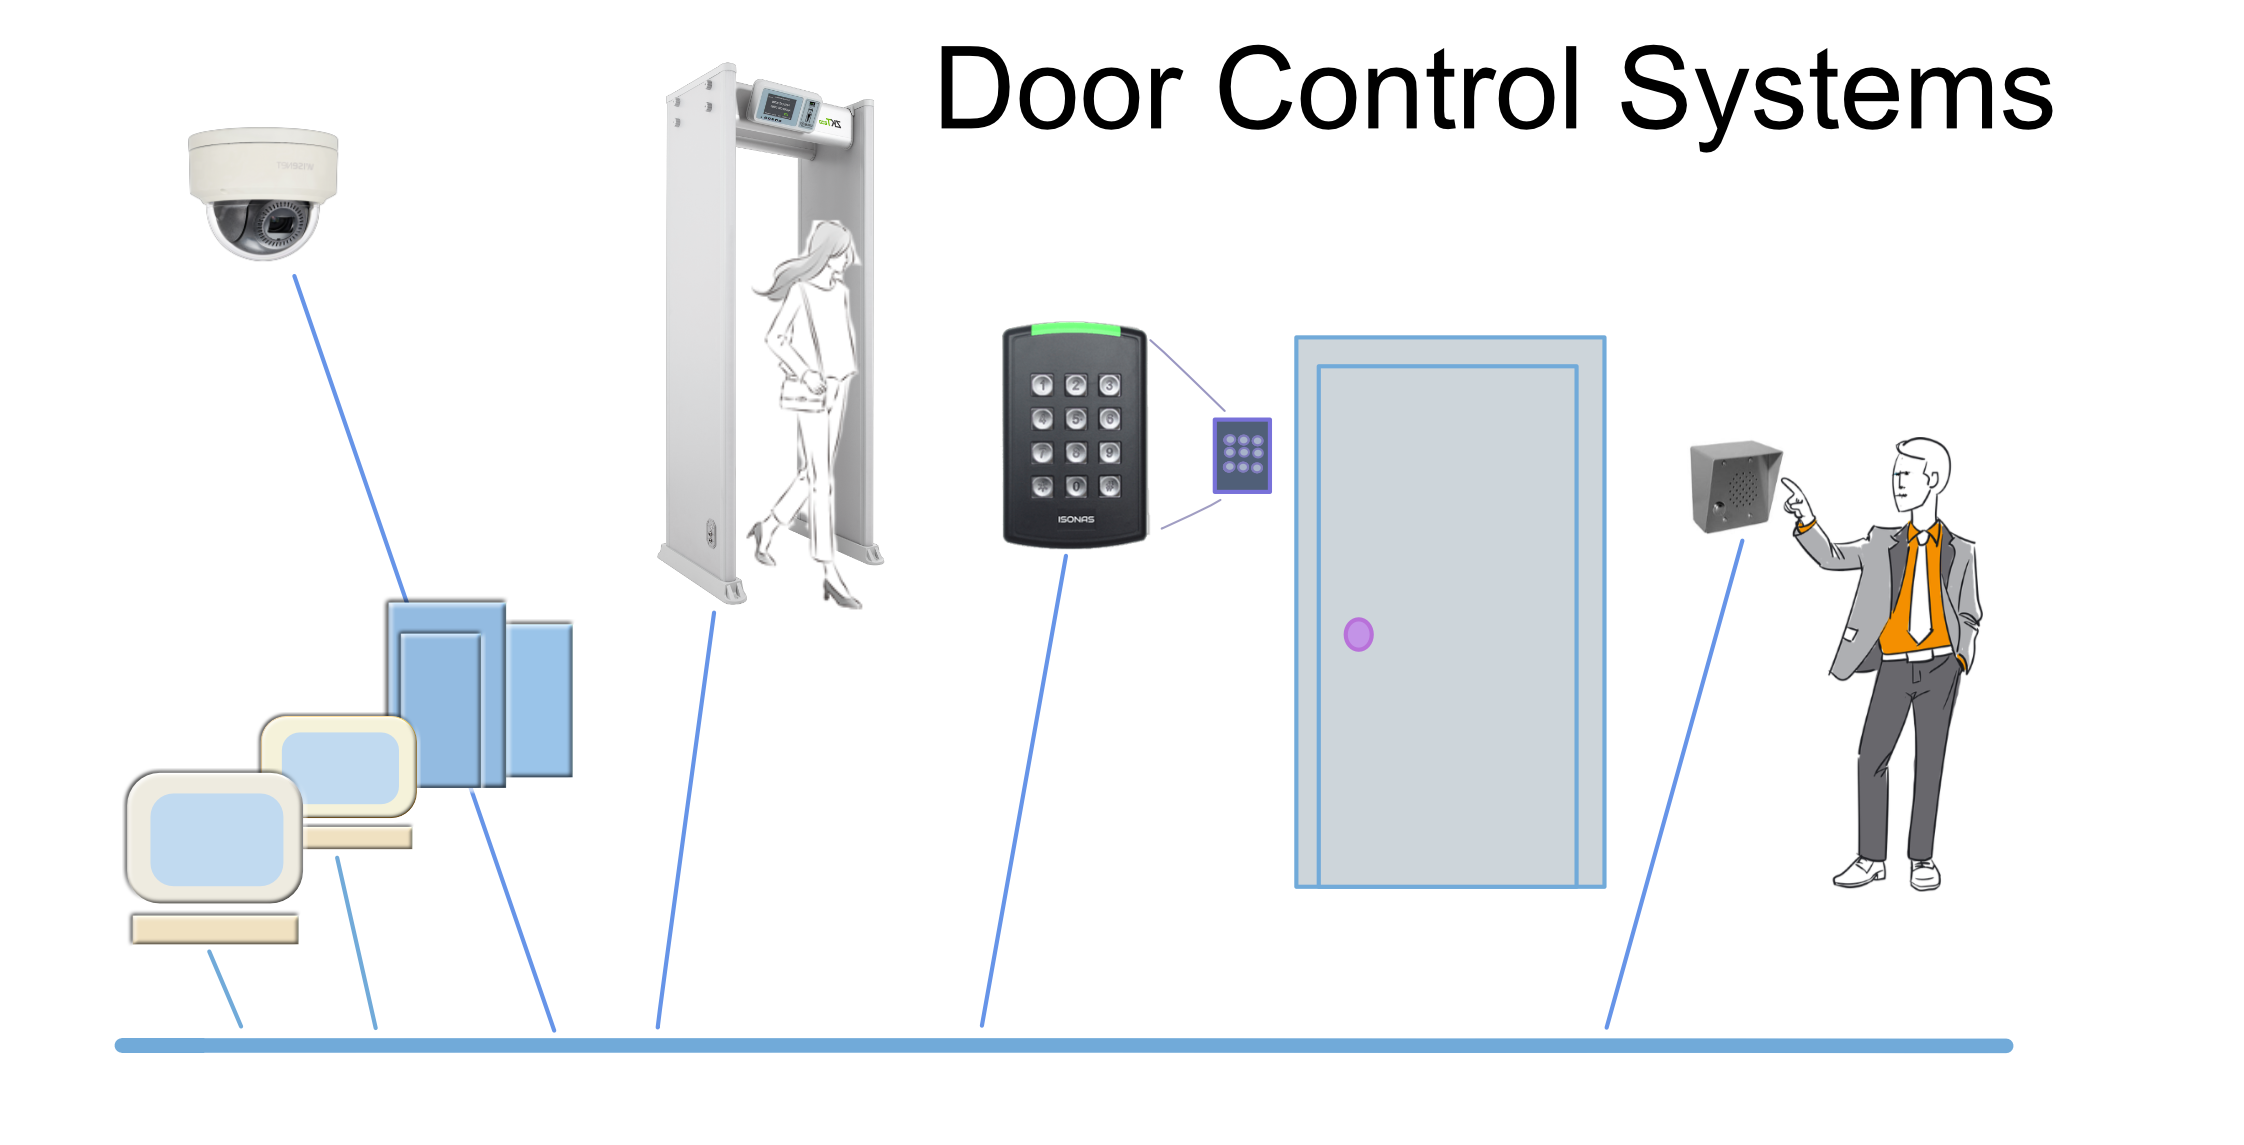 Security Provided by Access Control Systems - Kintronics